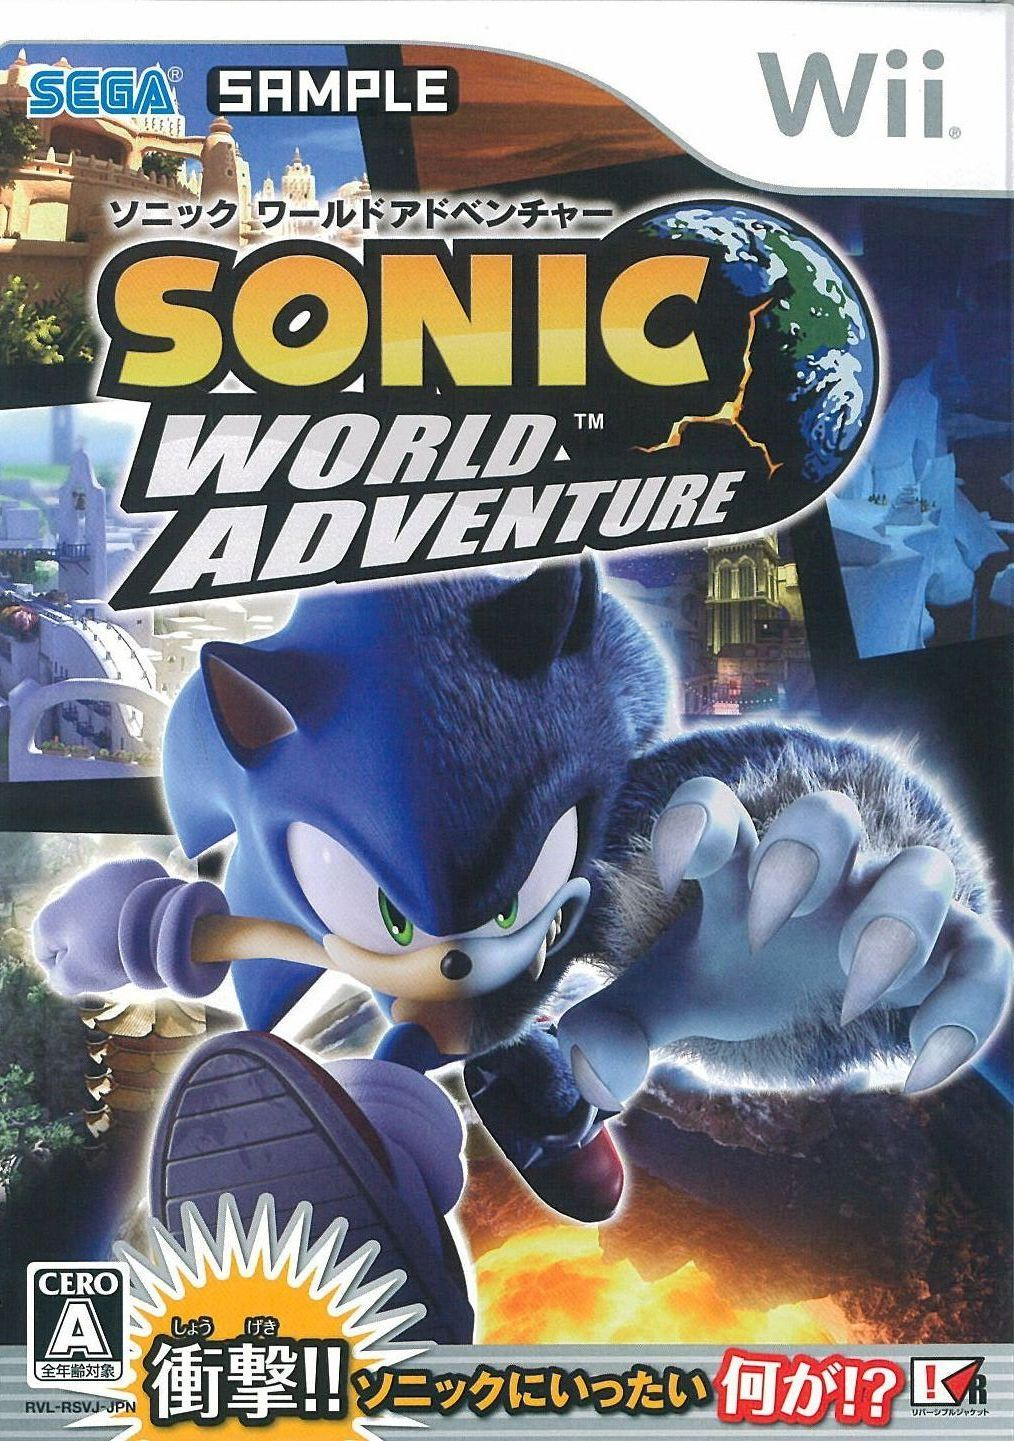 Sonic unleashed music extended